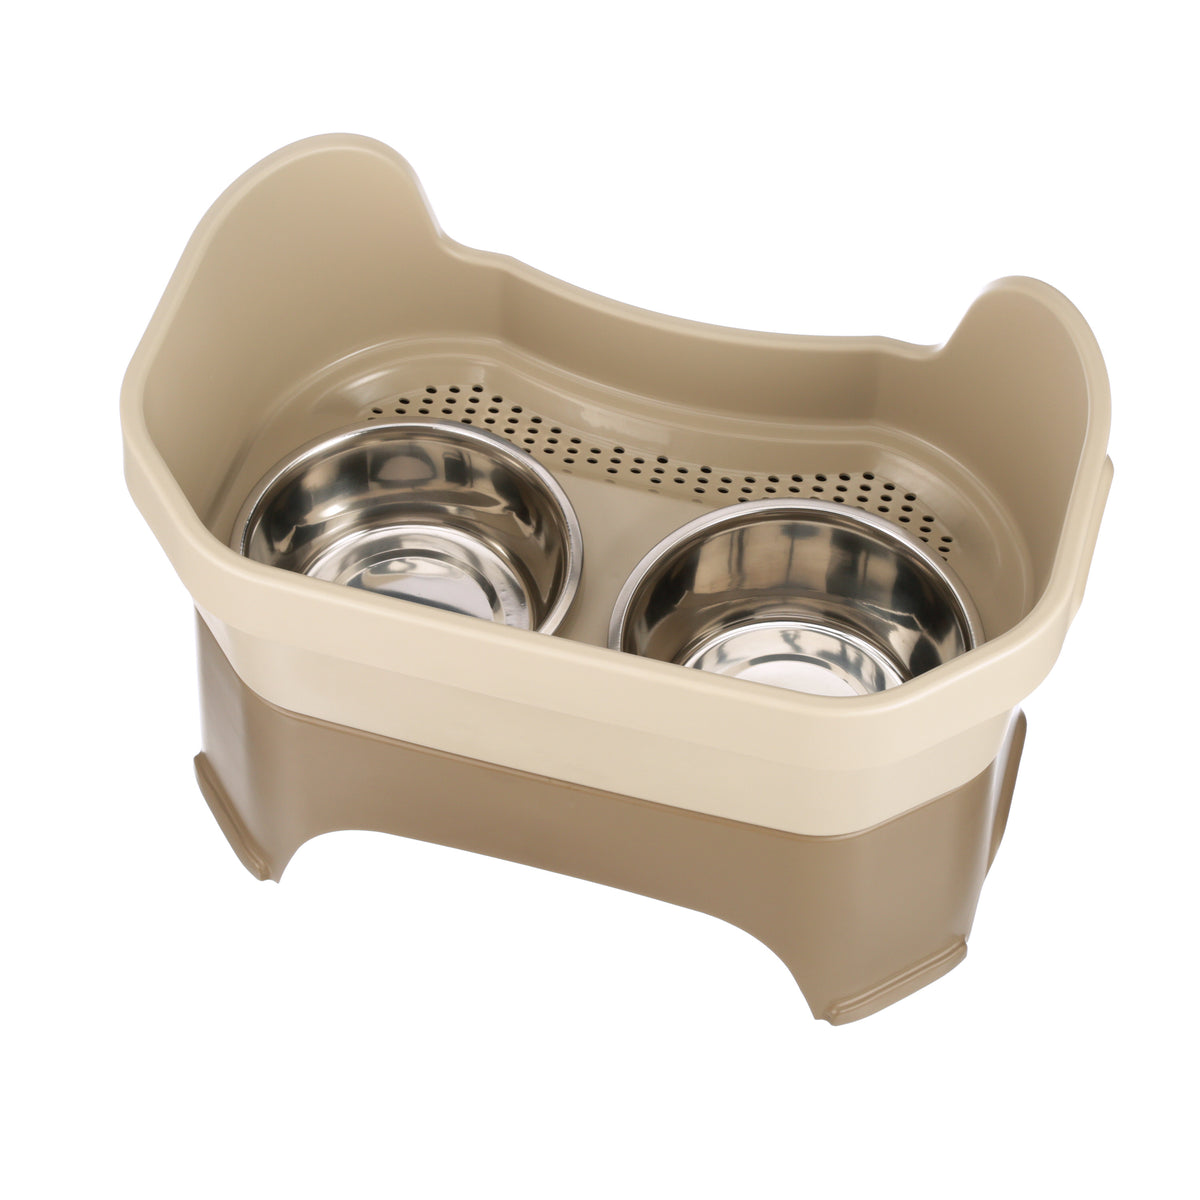 DELUXE Neater Feeder - Large